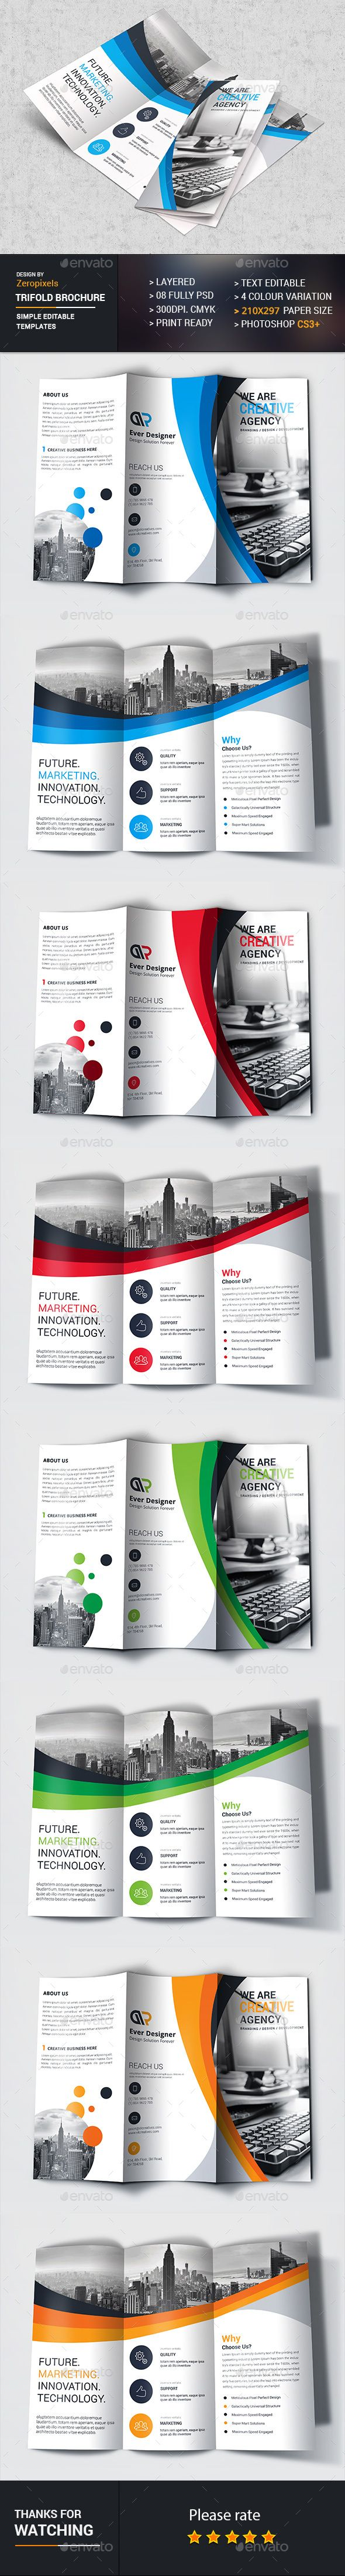 Business Trifold Brochure Template PSD Download Here Https - Trifold brochure template psd